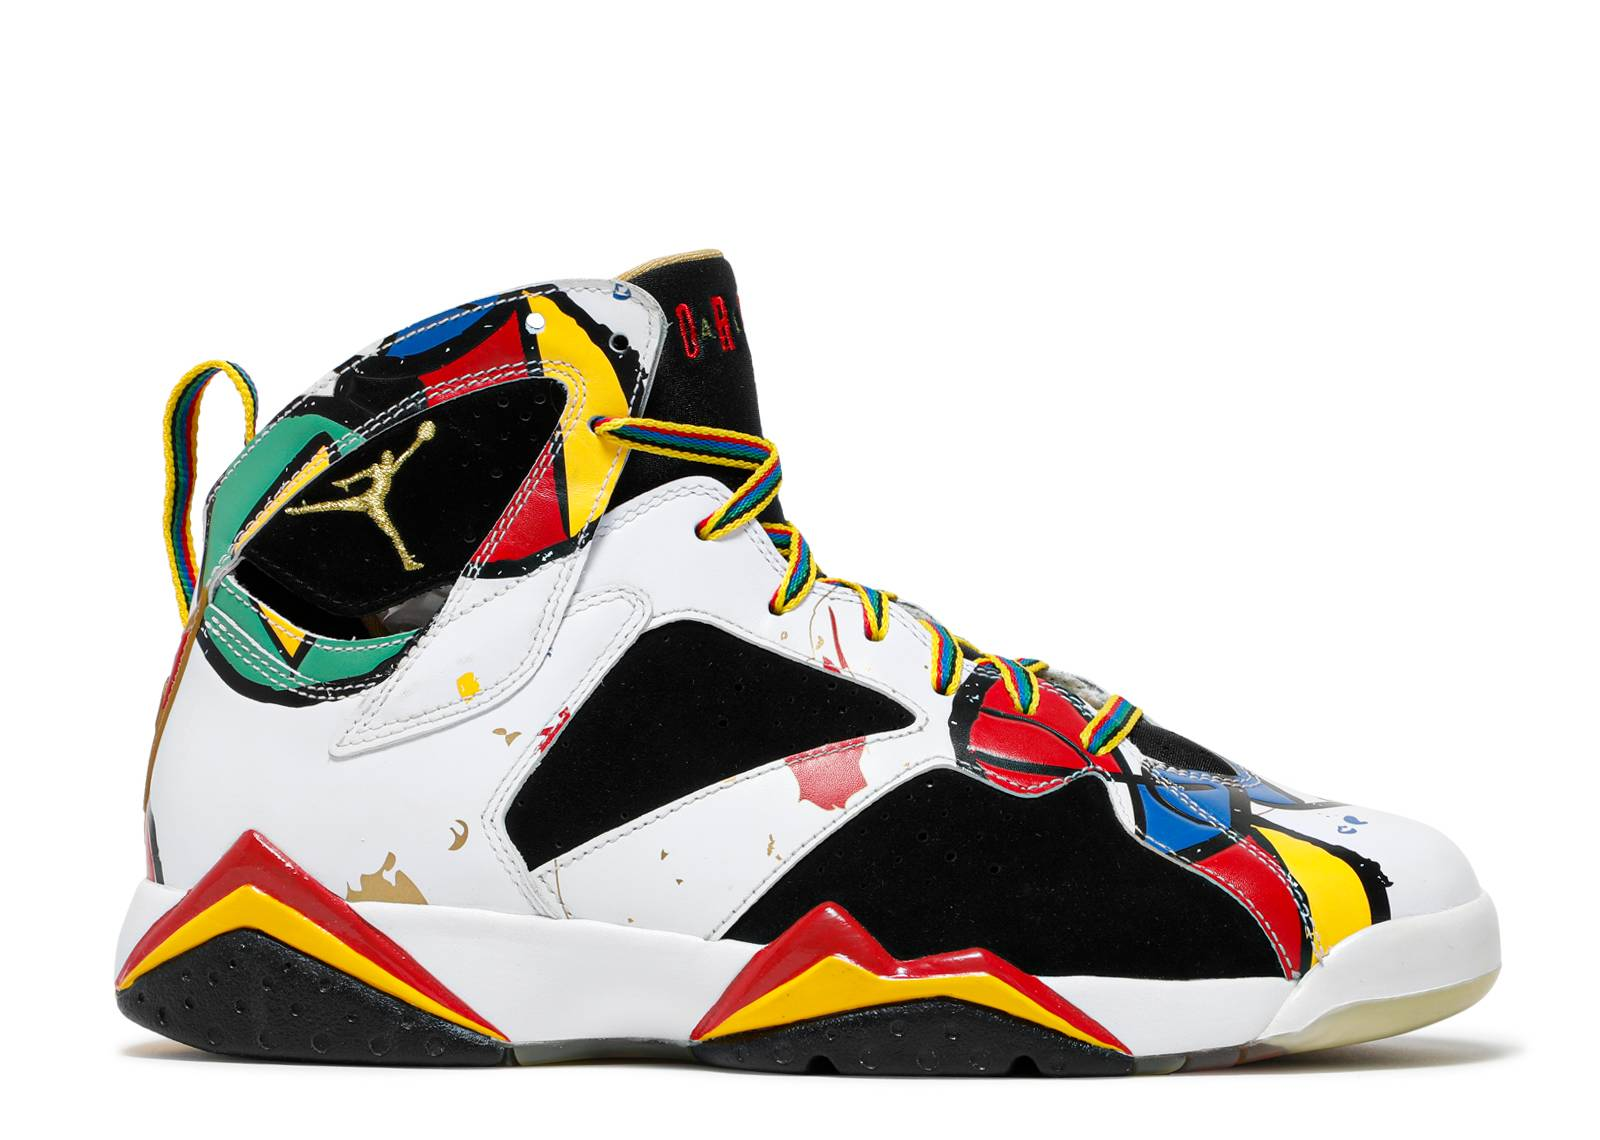 701e806d1016a9 Air Jordan 7 Retro Oc